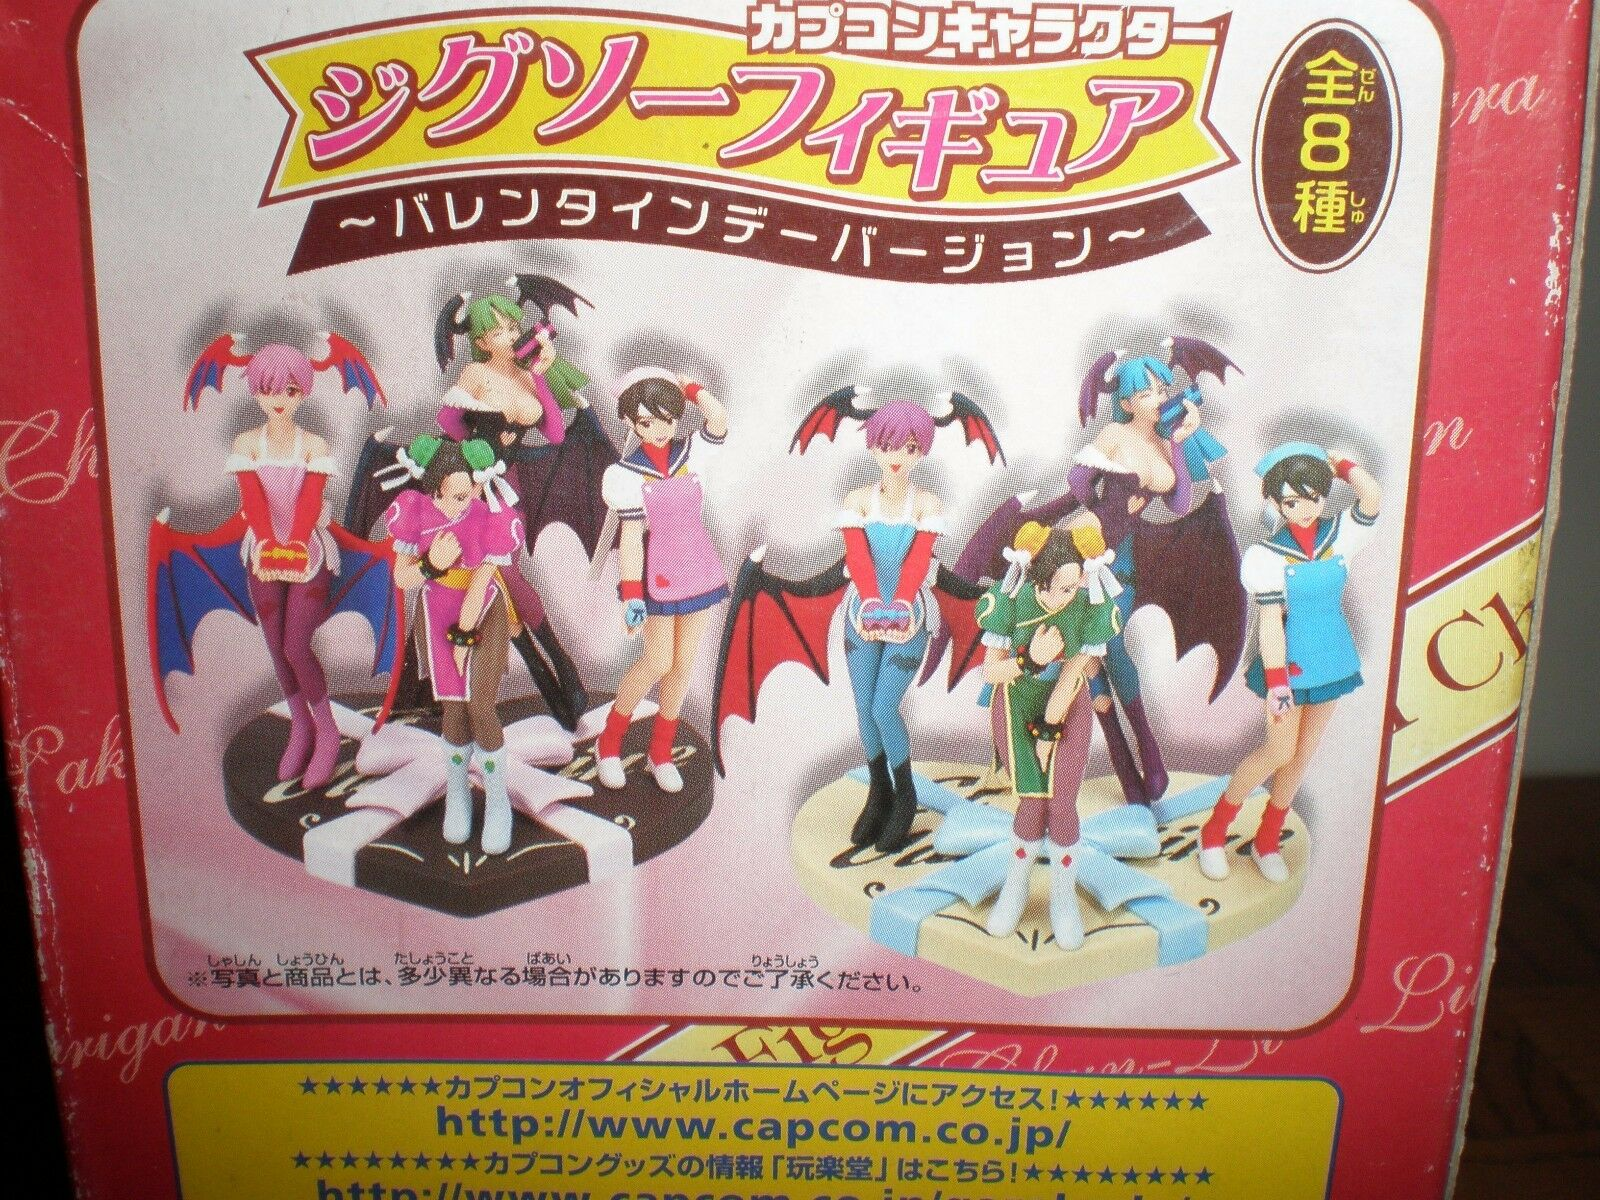 Capcom Capcom Capcom collection figure happy valentine lot 1c4d30